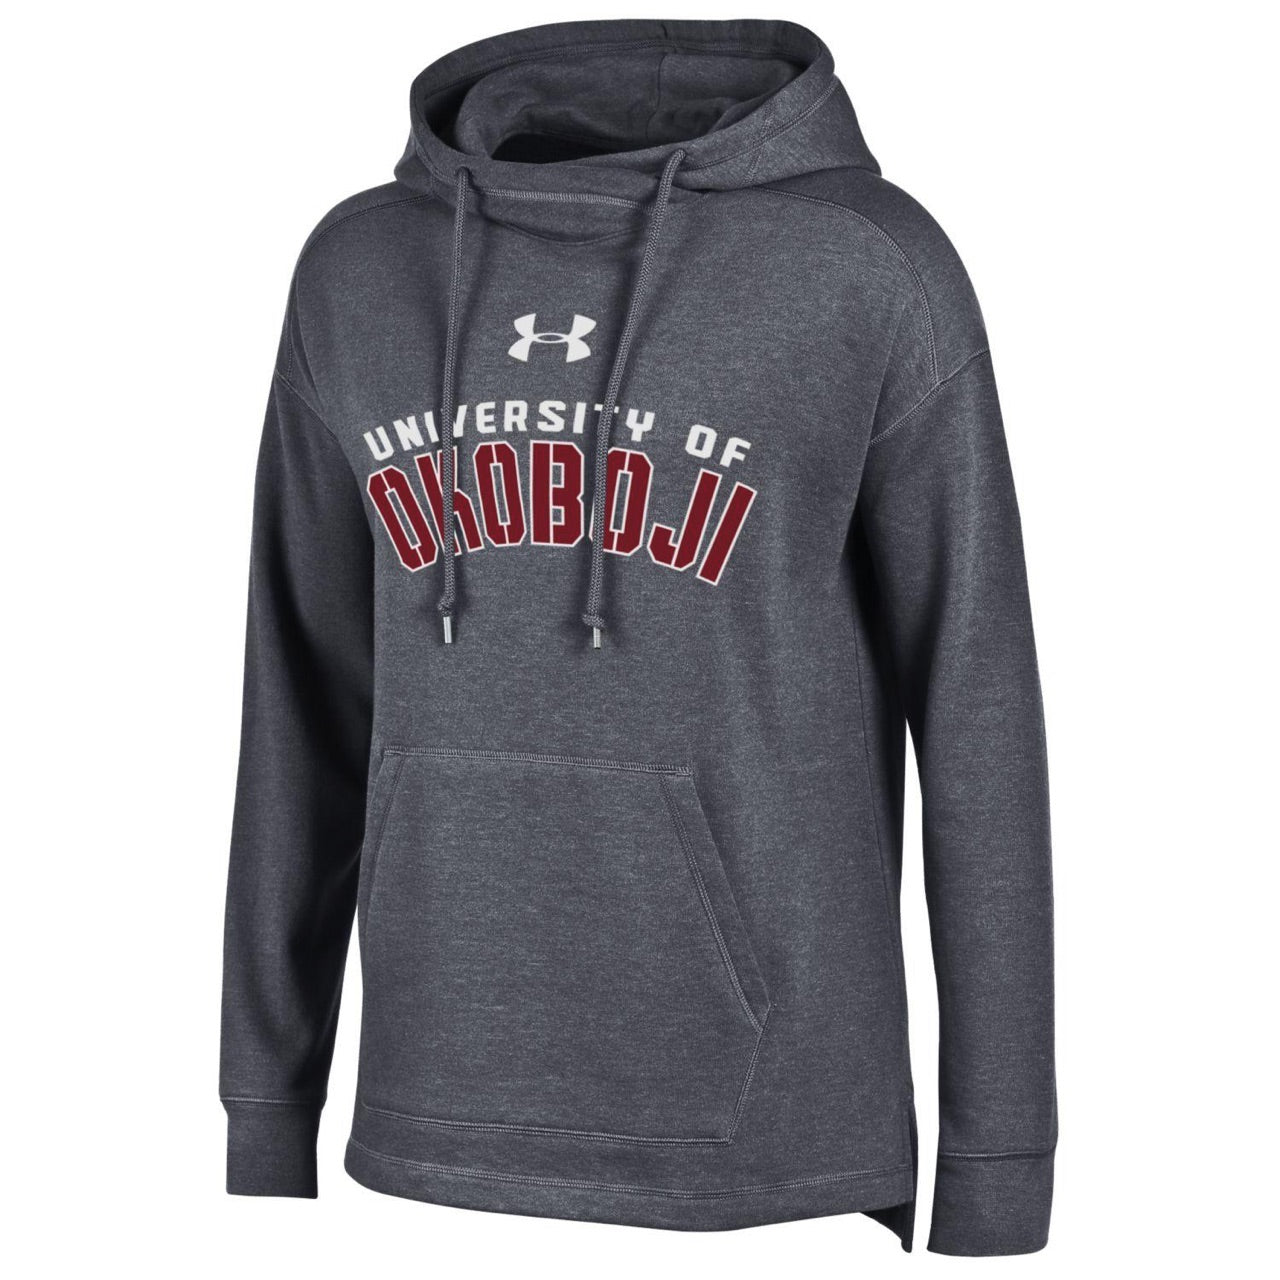 Under Armour Women's ColdGear® Dark Gray Hoodie